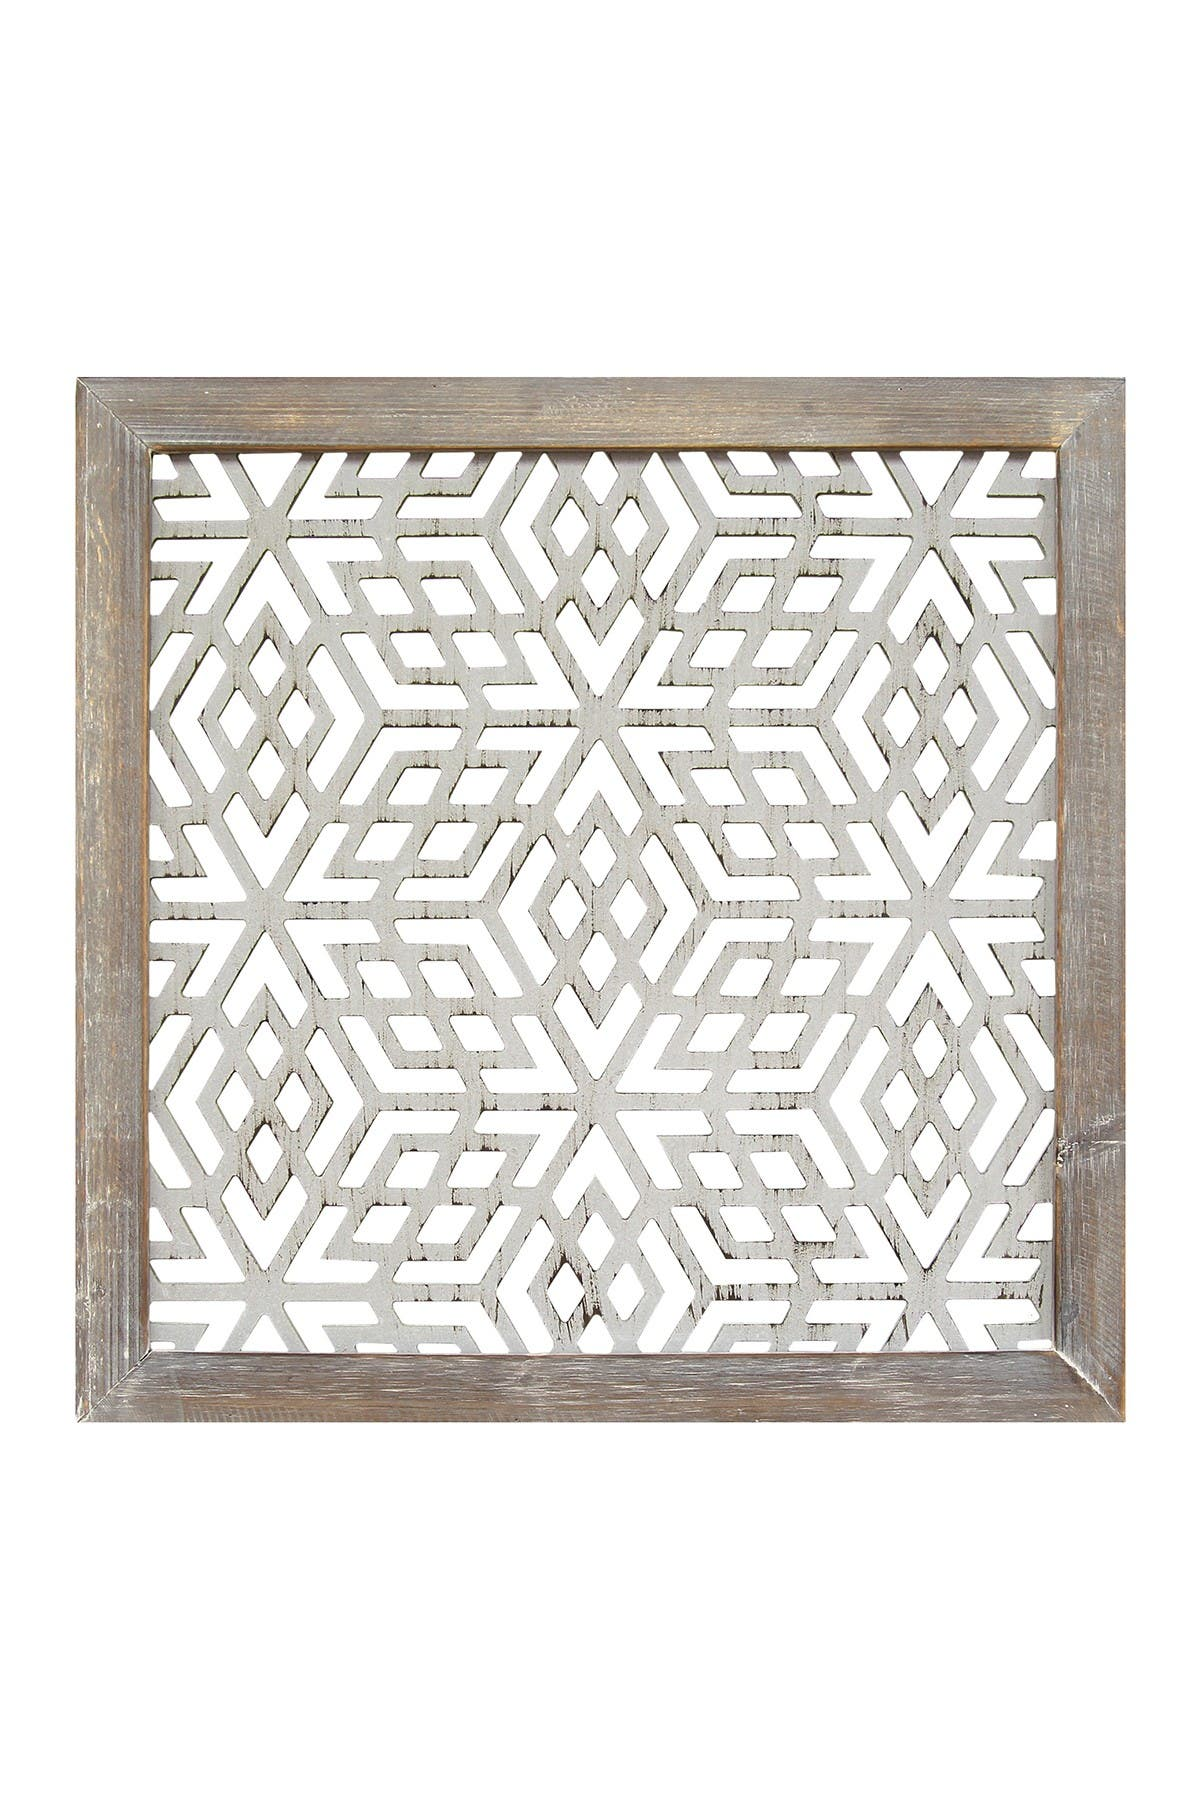 Image of Stratton Home Distressed Grey Framed Laser-Cut Wall Decor